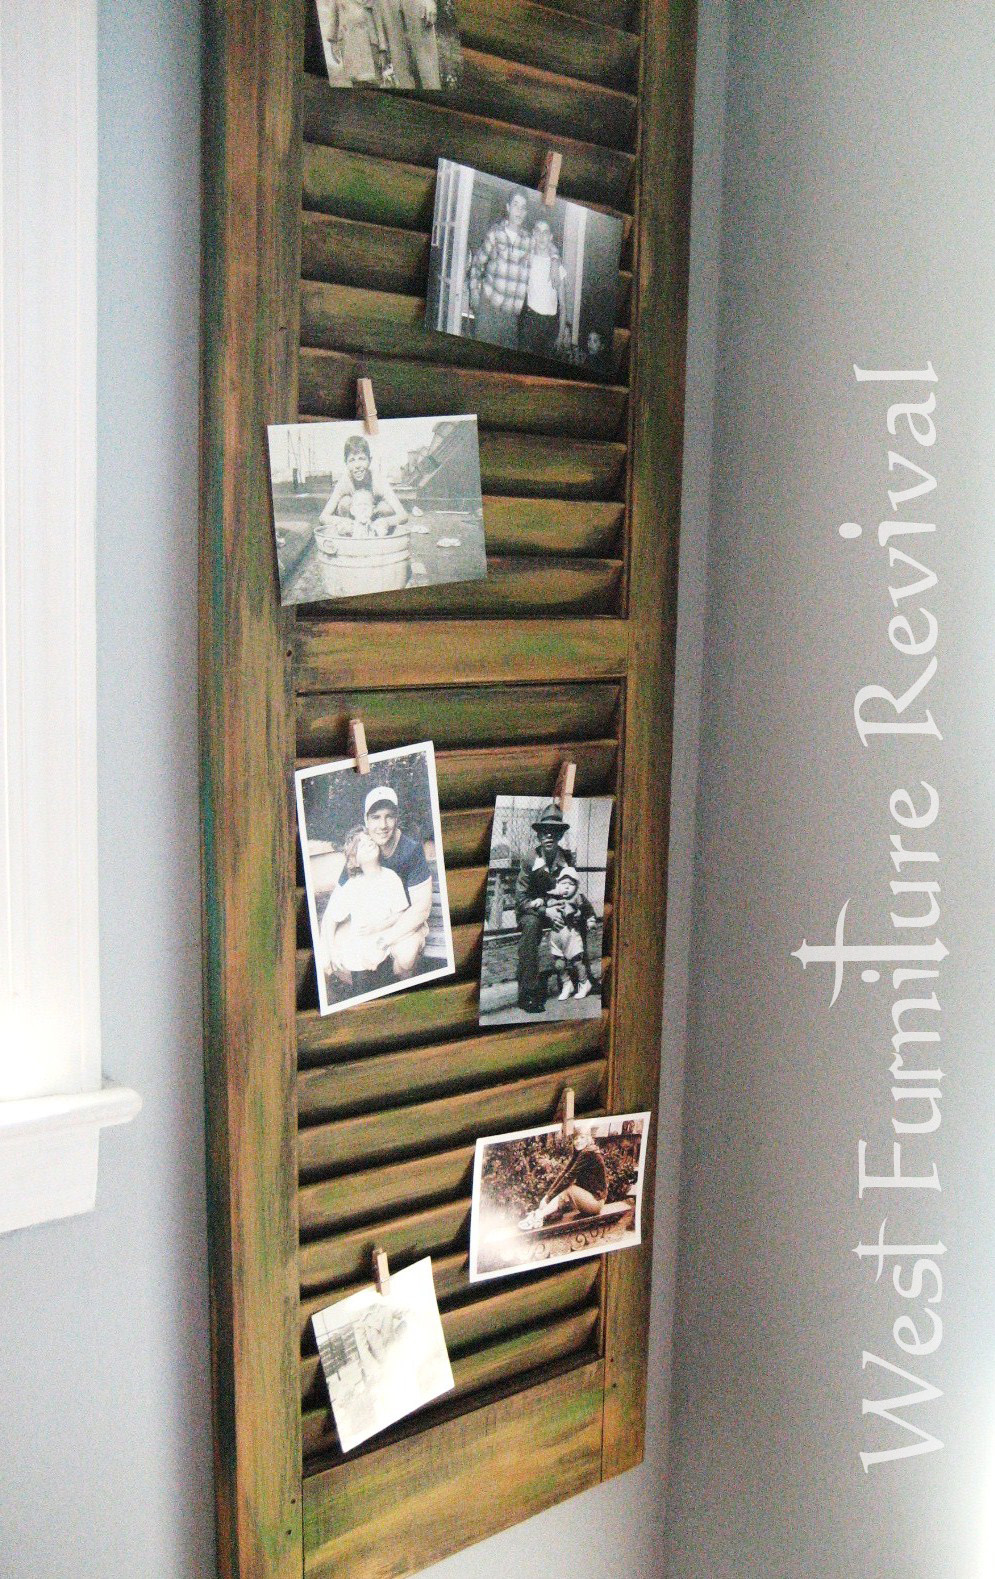 West Furniture Revival Shutter Repurposed Dry Brushed